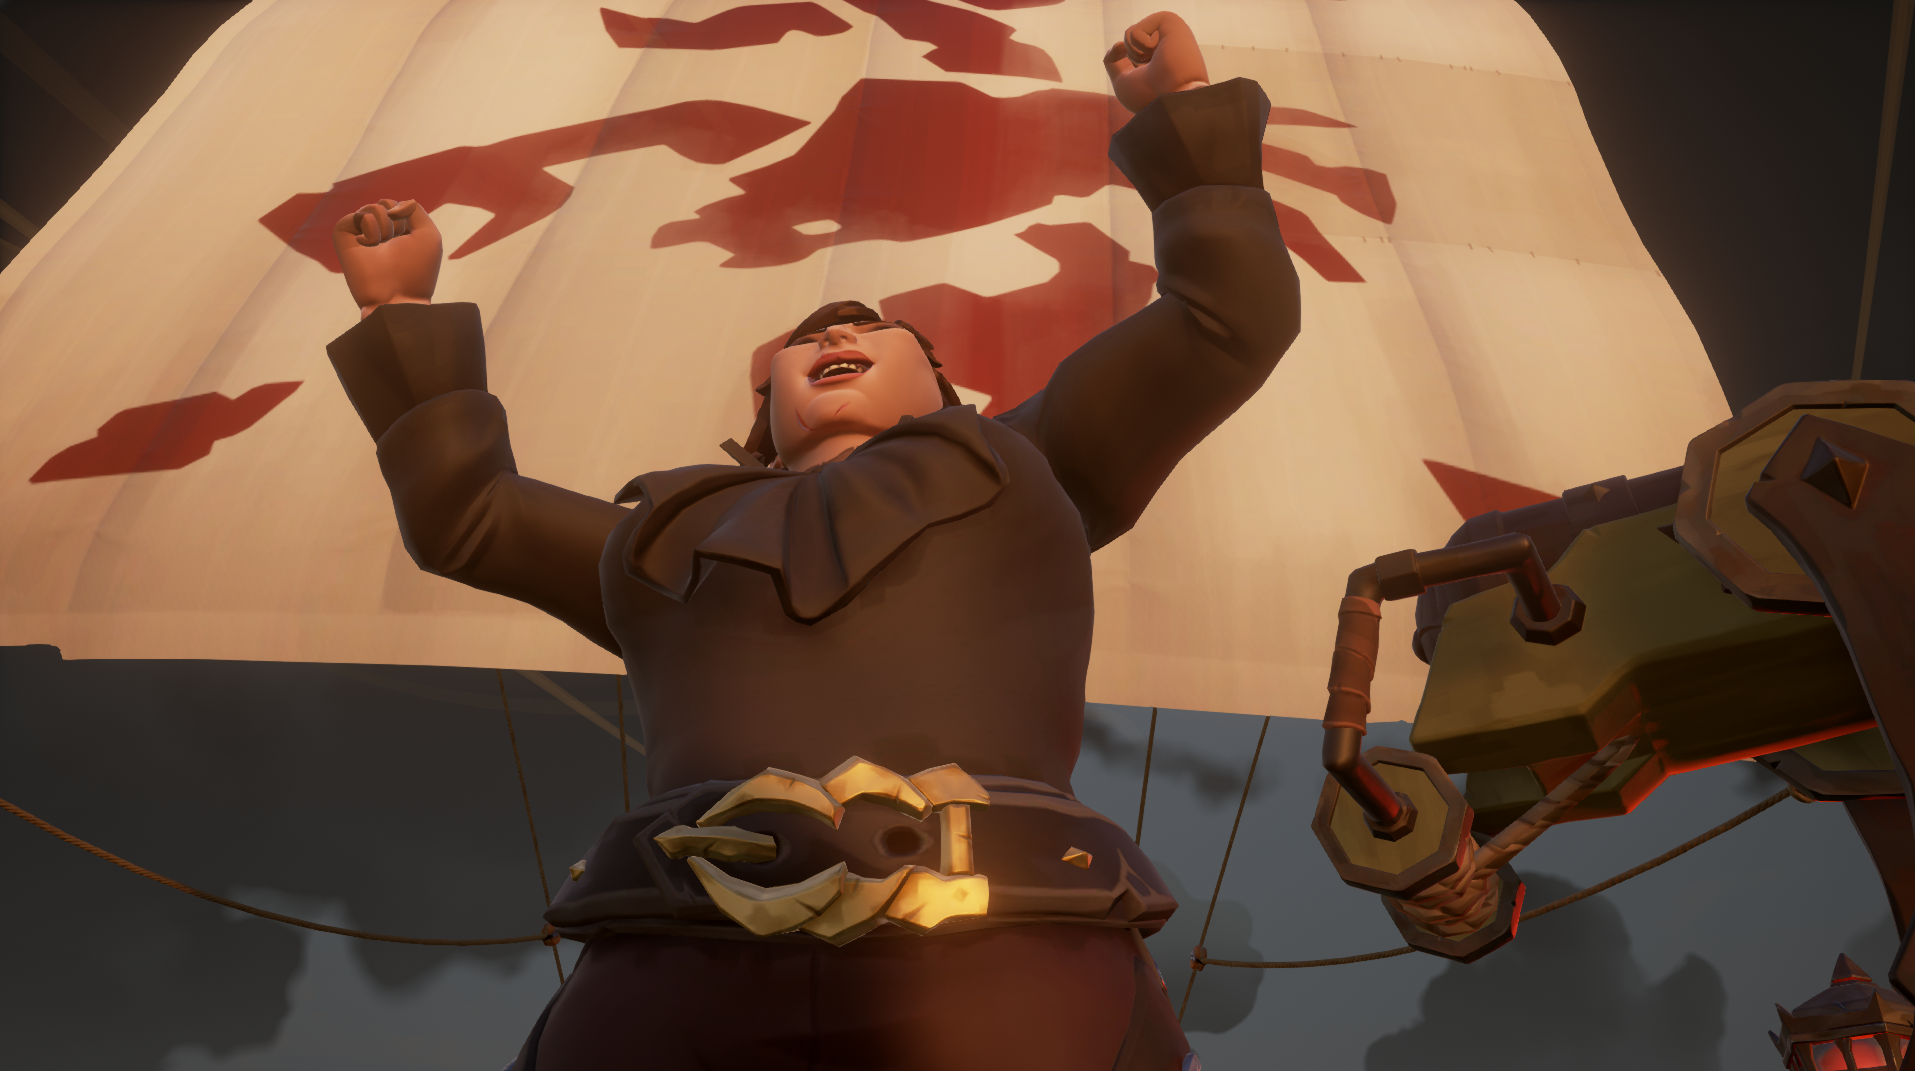 I've found the key to making everyone mad in Sea of Thieves